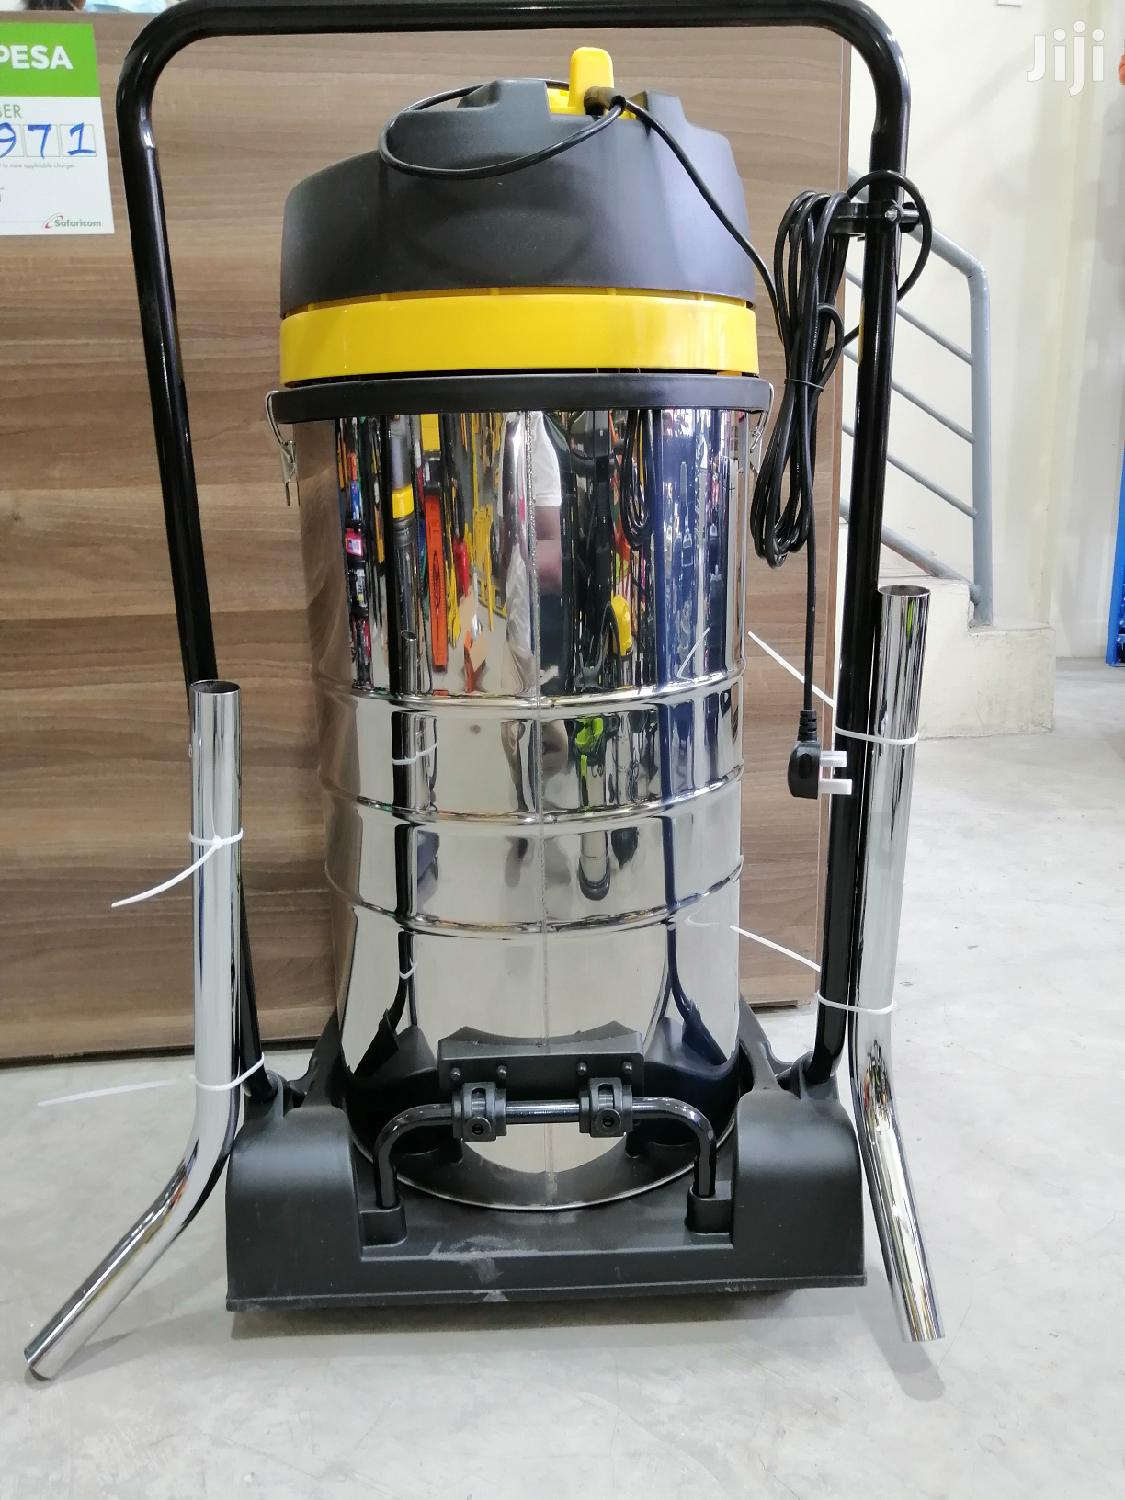 100ltrs Wet And Dry Vacuum Cleaner Aico | Home Appliances for sale in Nairobi Central, Nairobi, Kenya